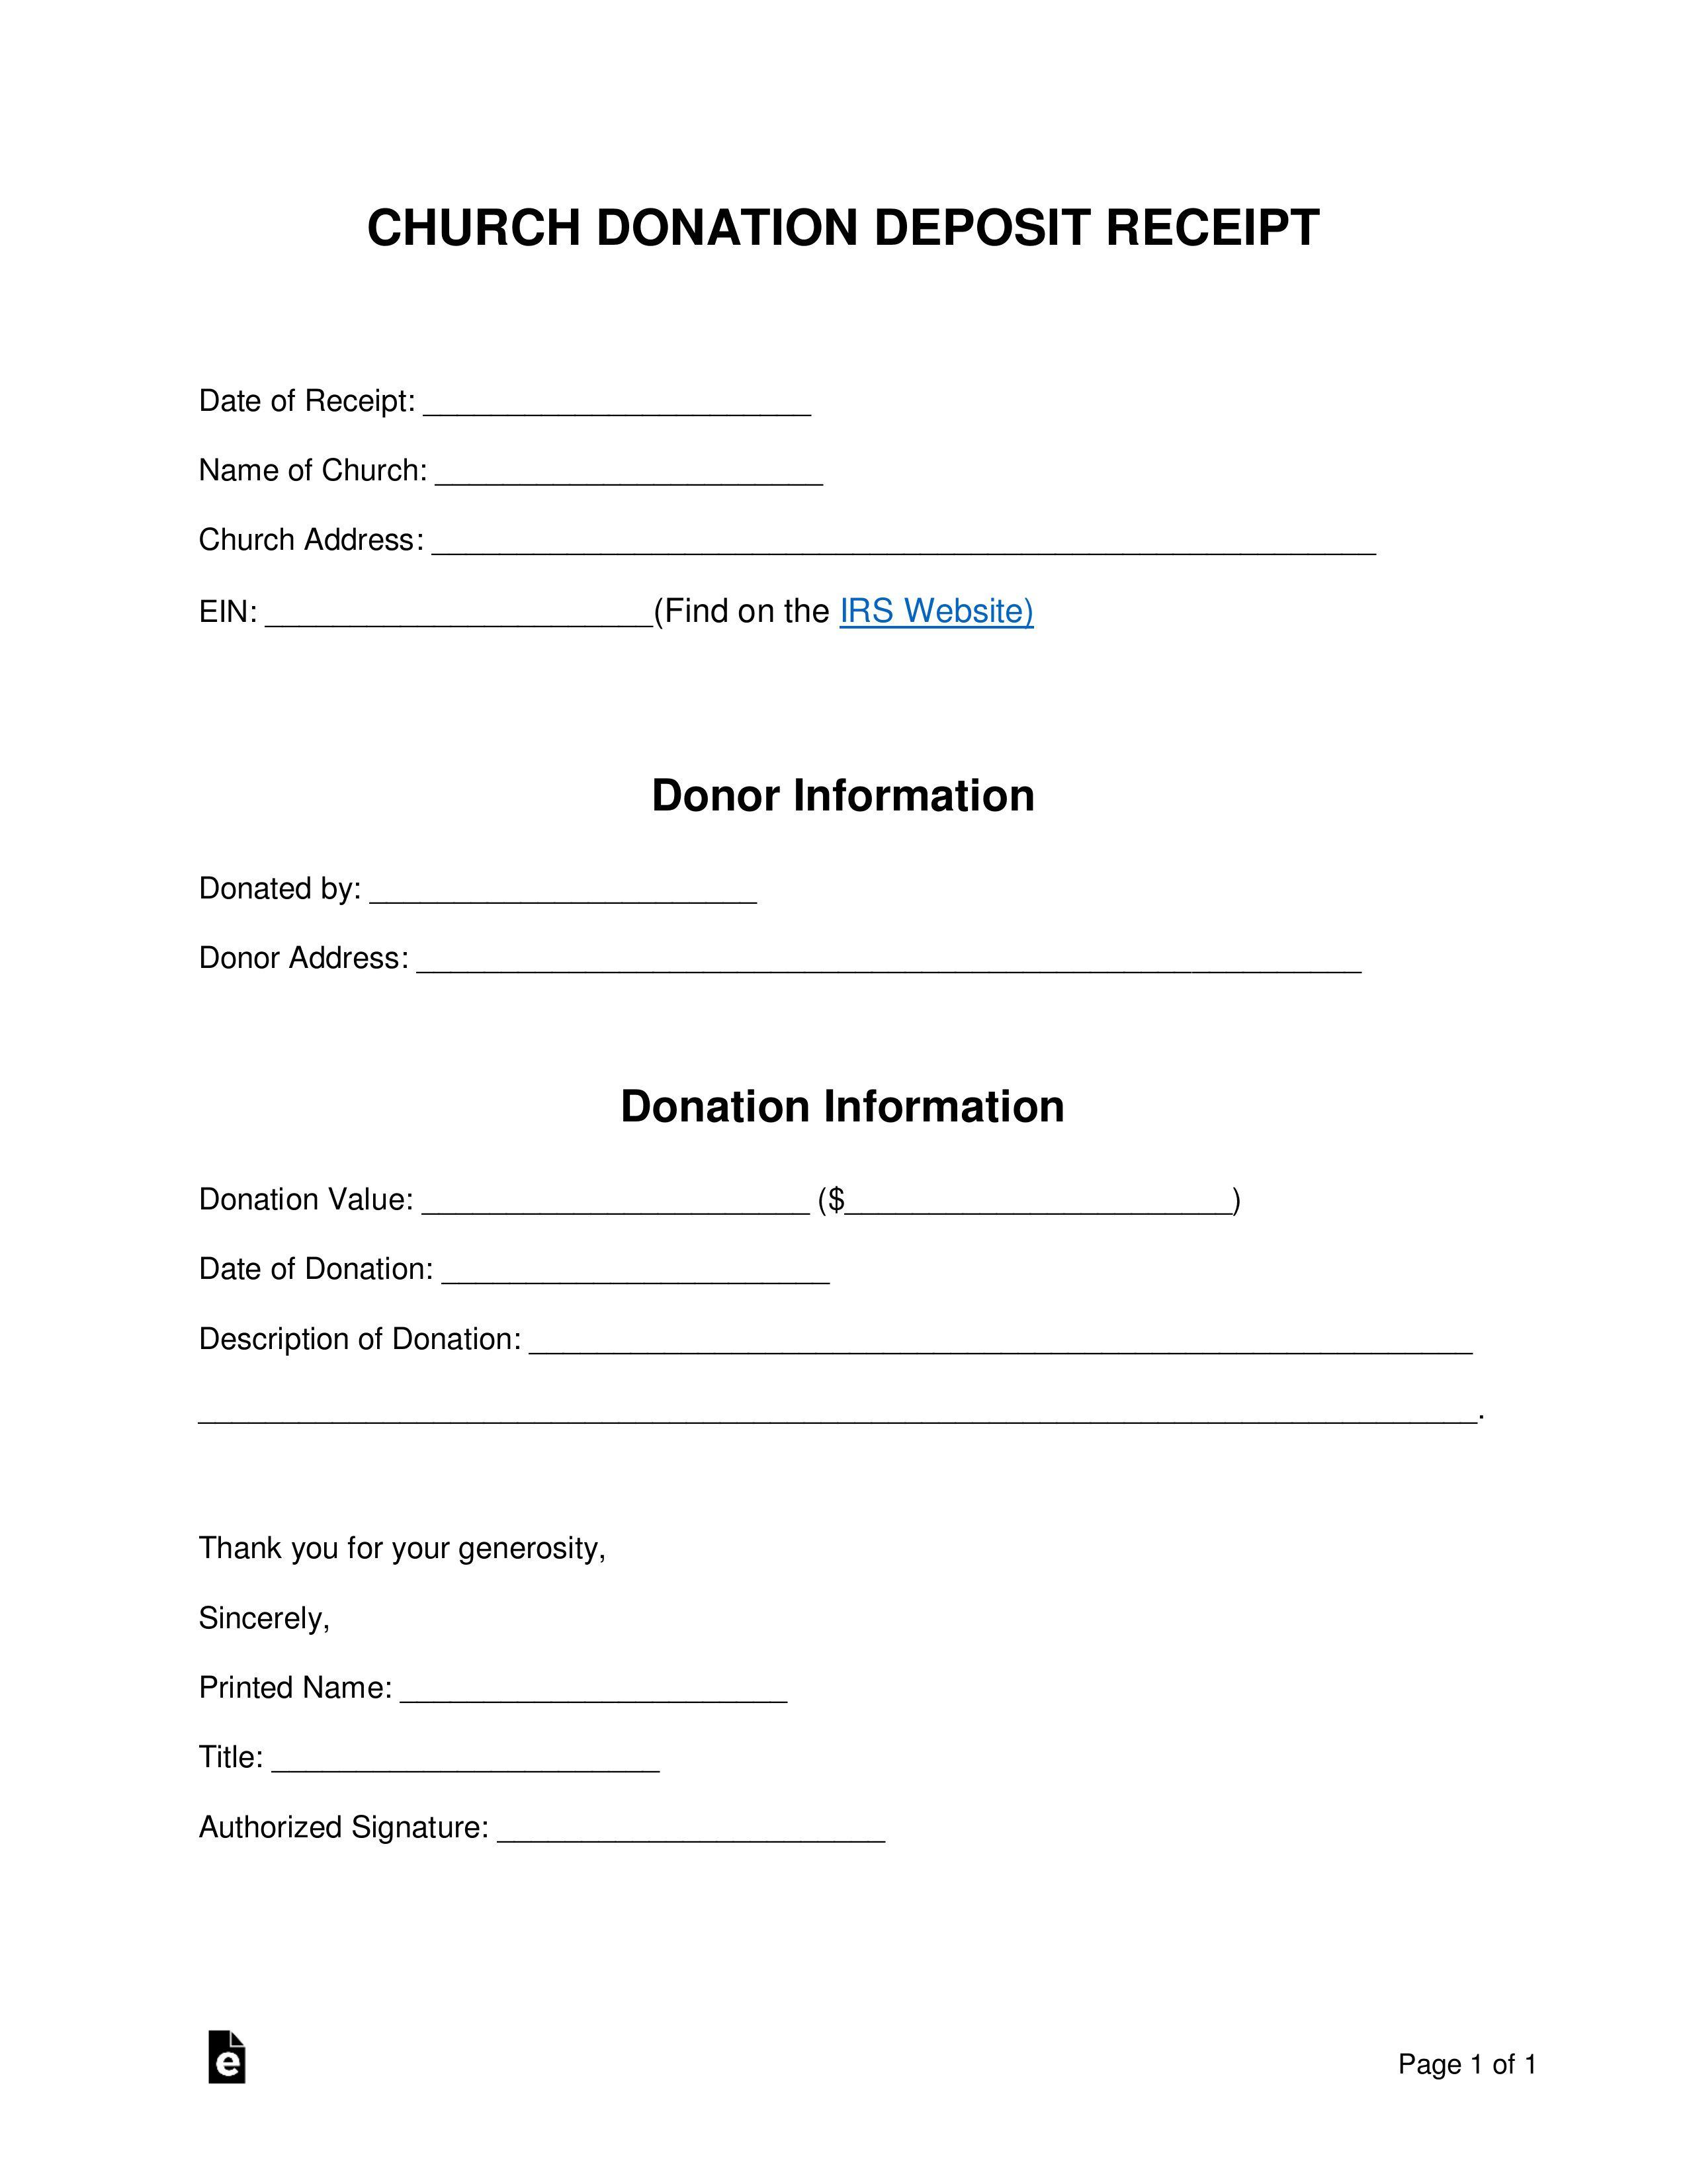 003 Wonderful Tax Donation Receipt Template High Def  Canadian Charitable Letter Church DeductionFull